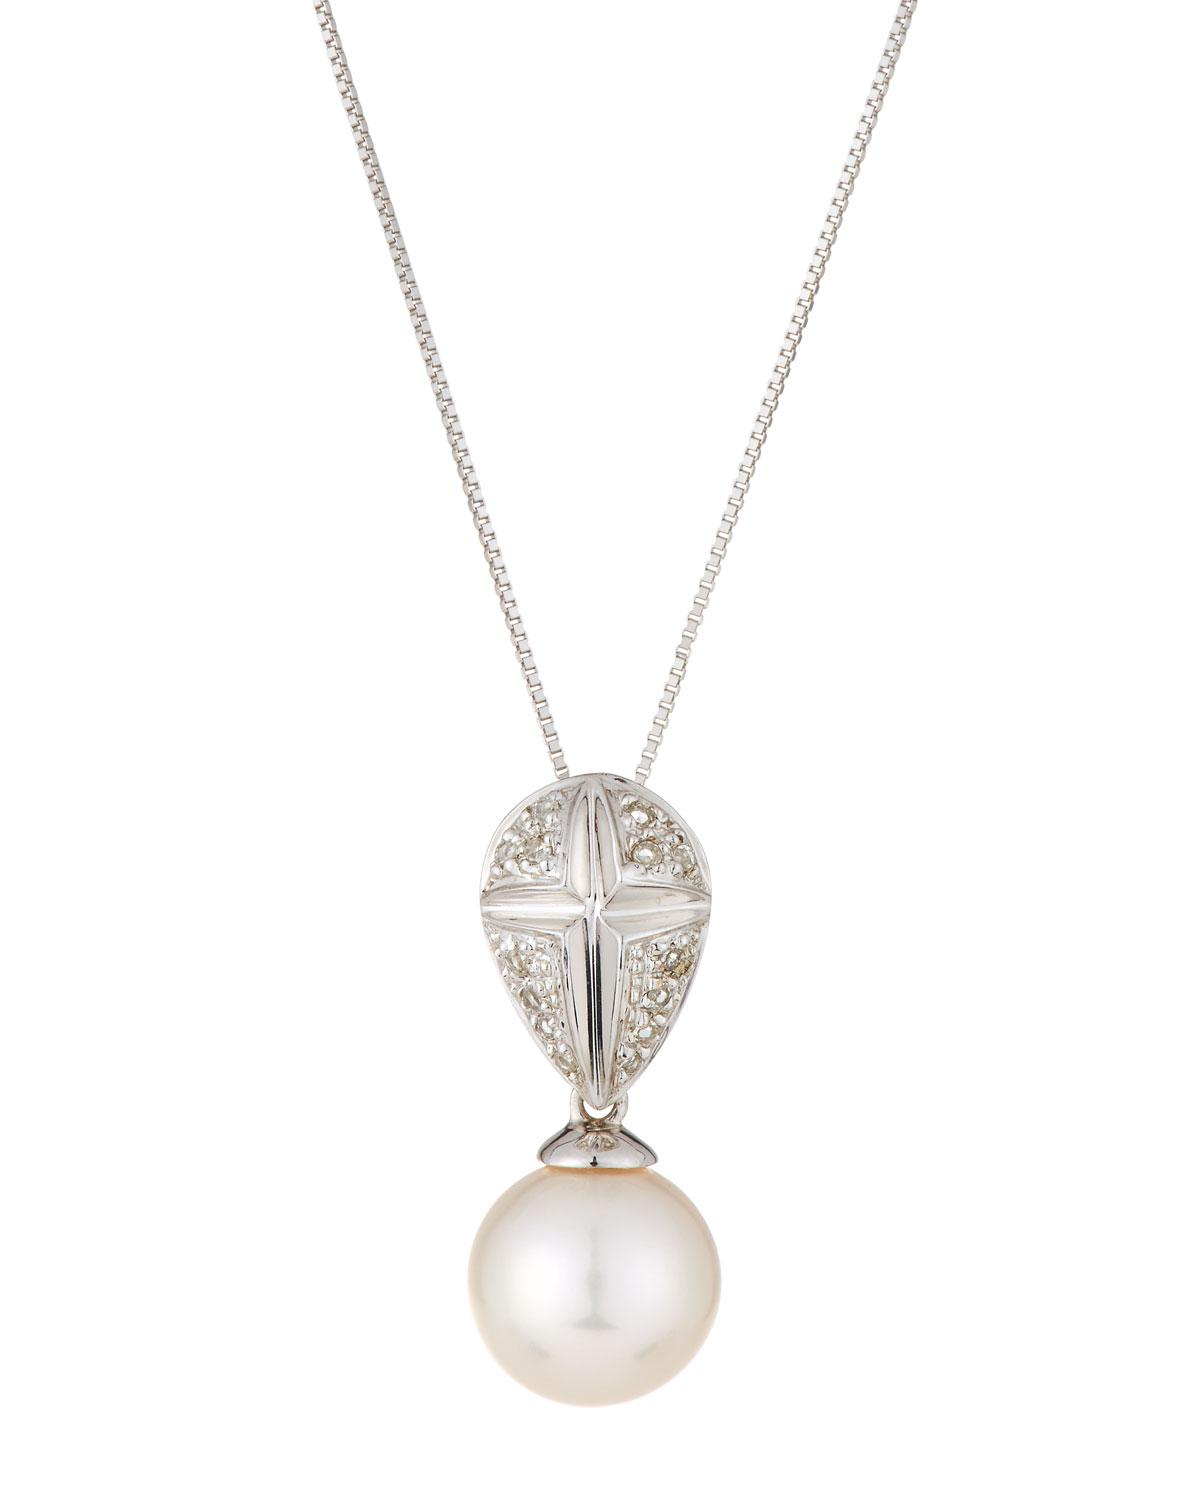 Belpearl 14k Diamond & Pearl Round Pendant Necklace